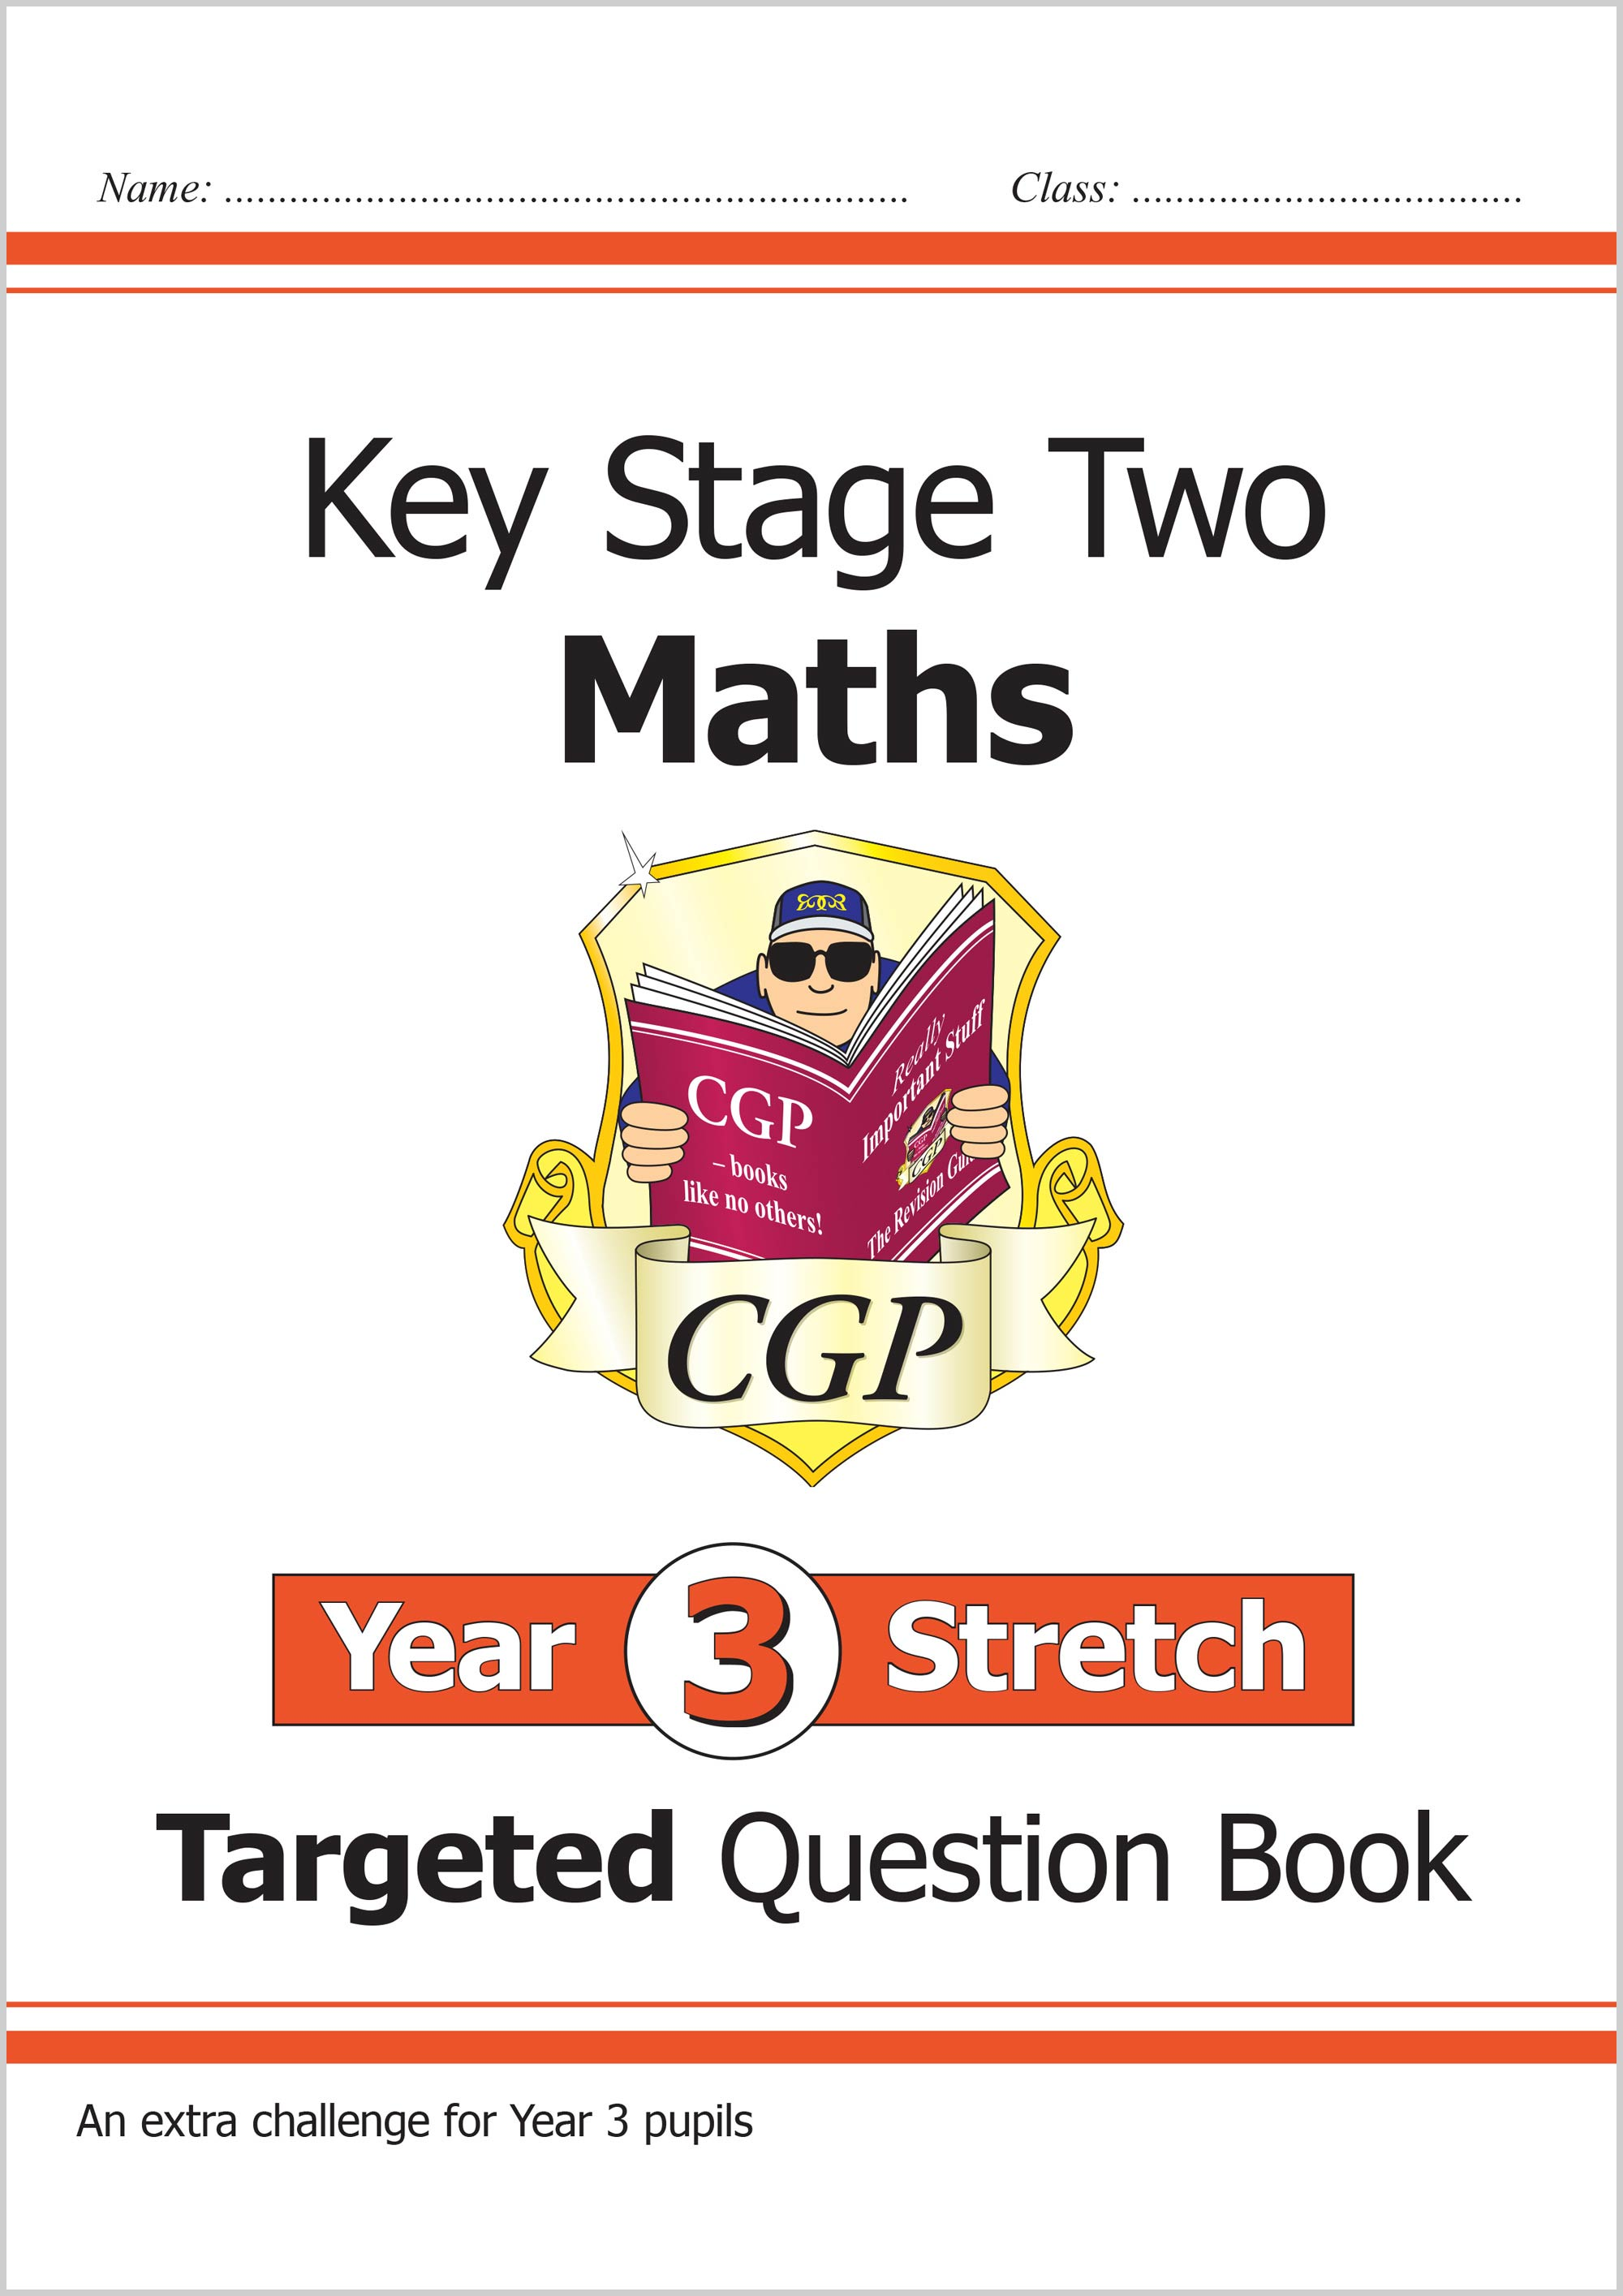 M3HQ21 - New KS2 Maths Targeted Question Book: Challenging Maths - Year 3 Stretch